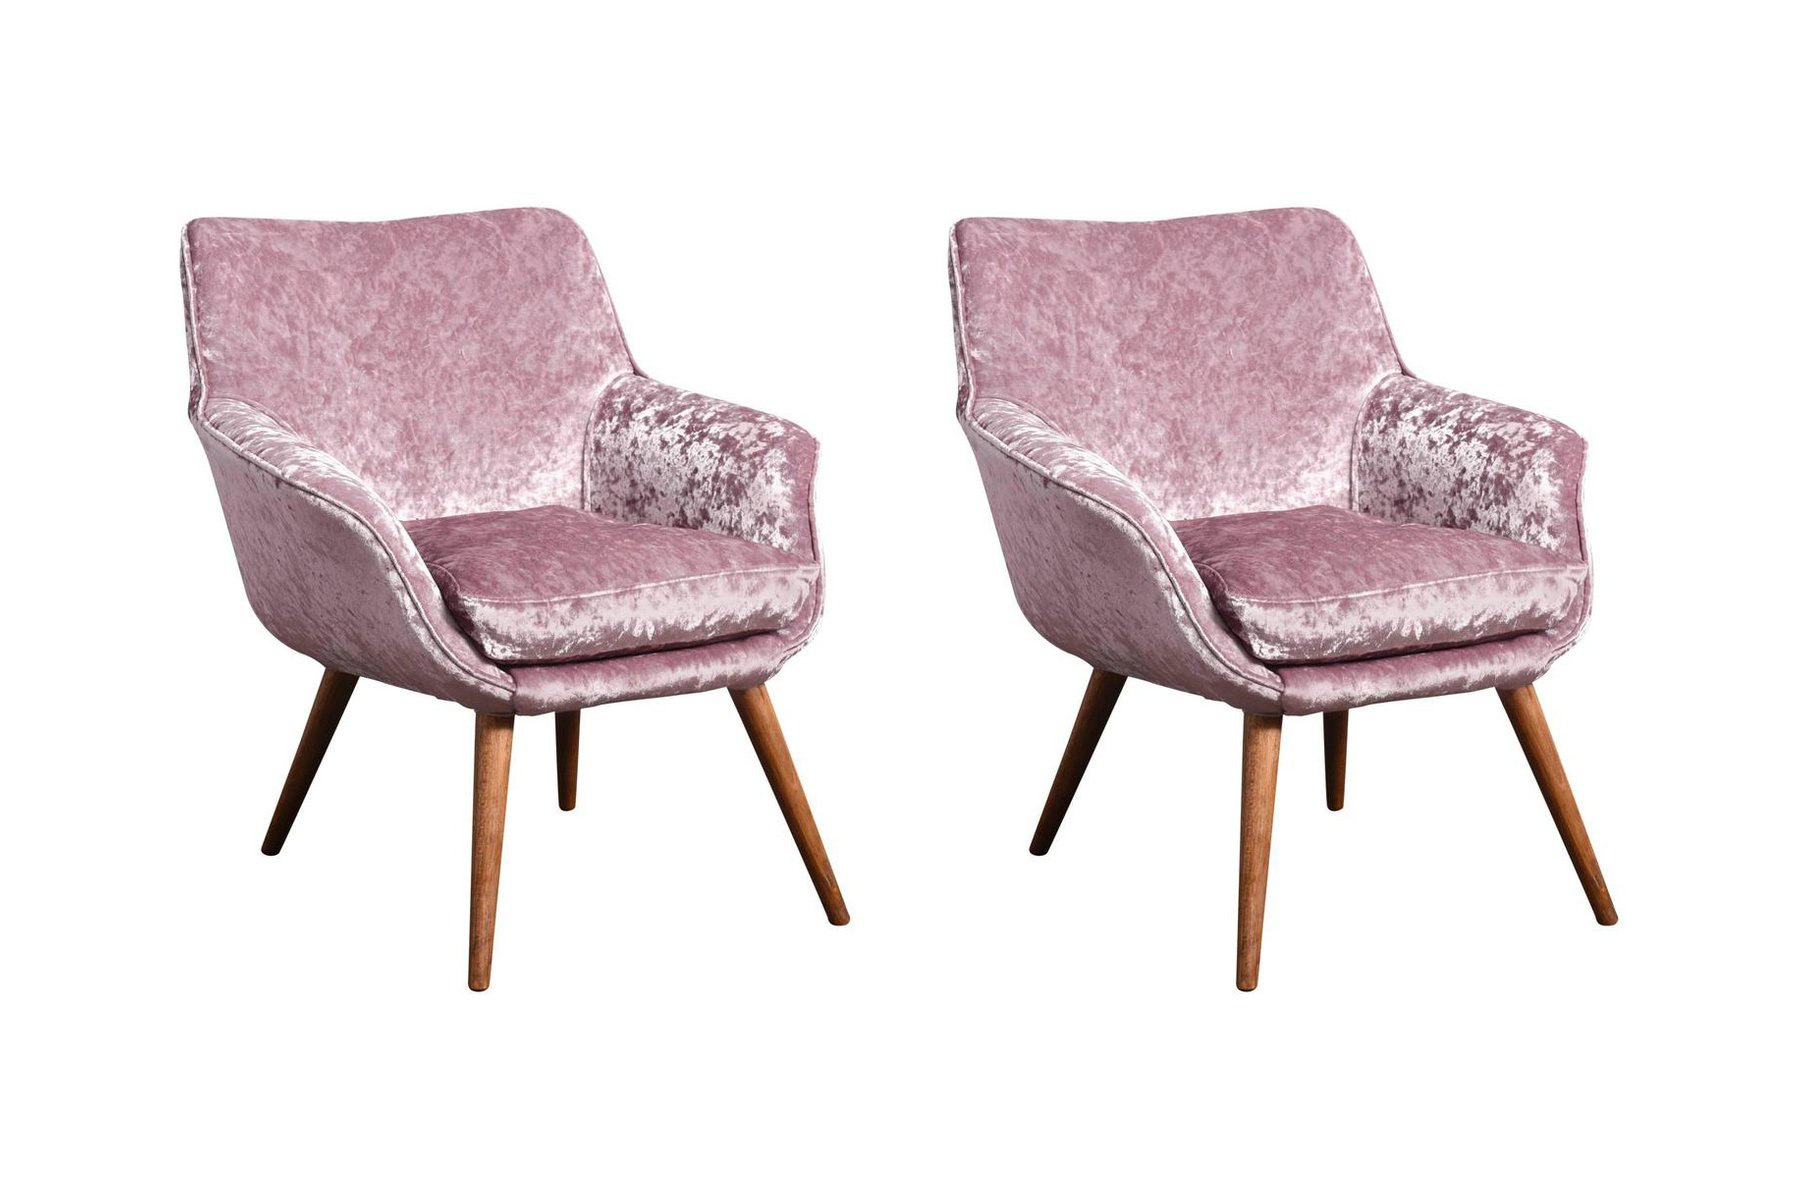 ash and velvet cocktail chairs 1960s set of 2 for sale at pamono. Black Bedroom Furniture Sets. Home Design Ideas